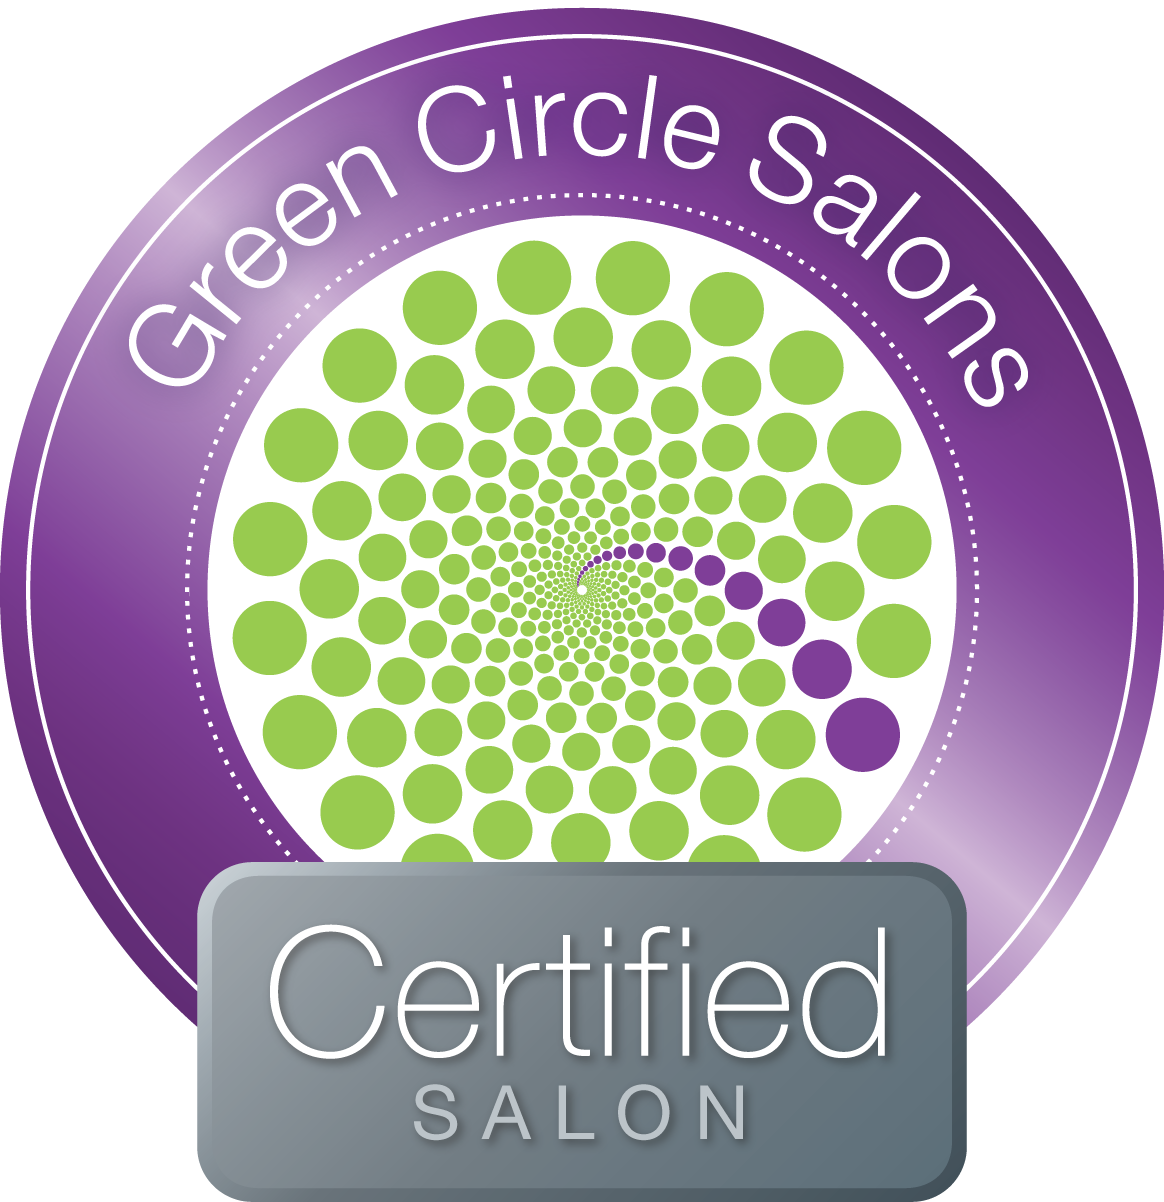 Pure Is a Green Circle Salon. - Green Circle Salons provide the world's first, and North America's only, sustainable salon solution to recover and repurpose beauty waste. Being a Green Circle Salon has allowed us to divert 1,539 pounds of waste from landfills and waterways since 2017.